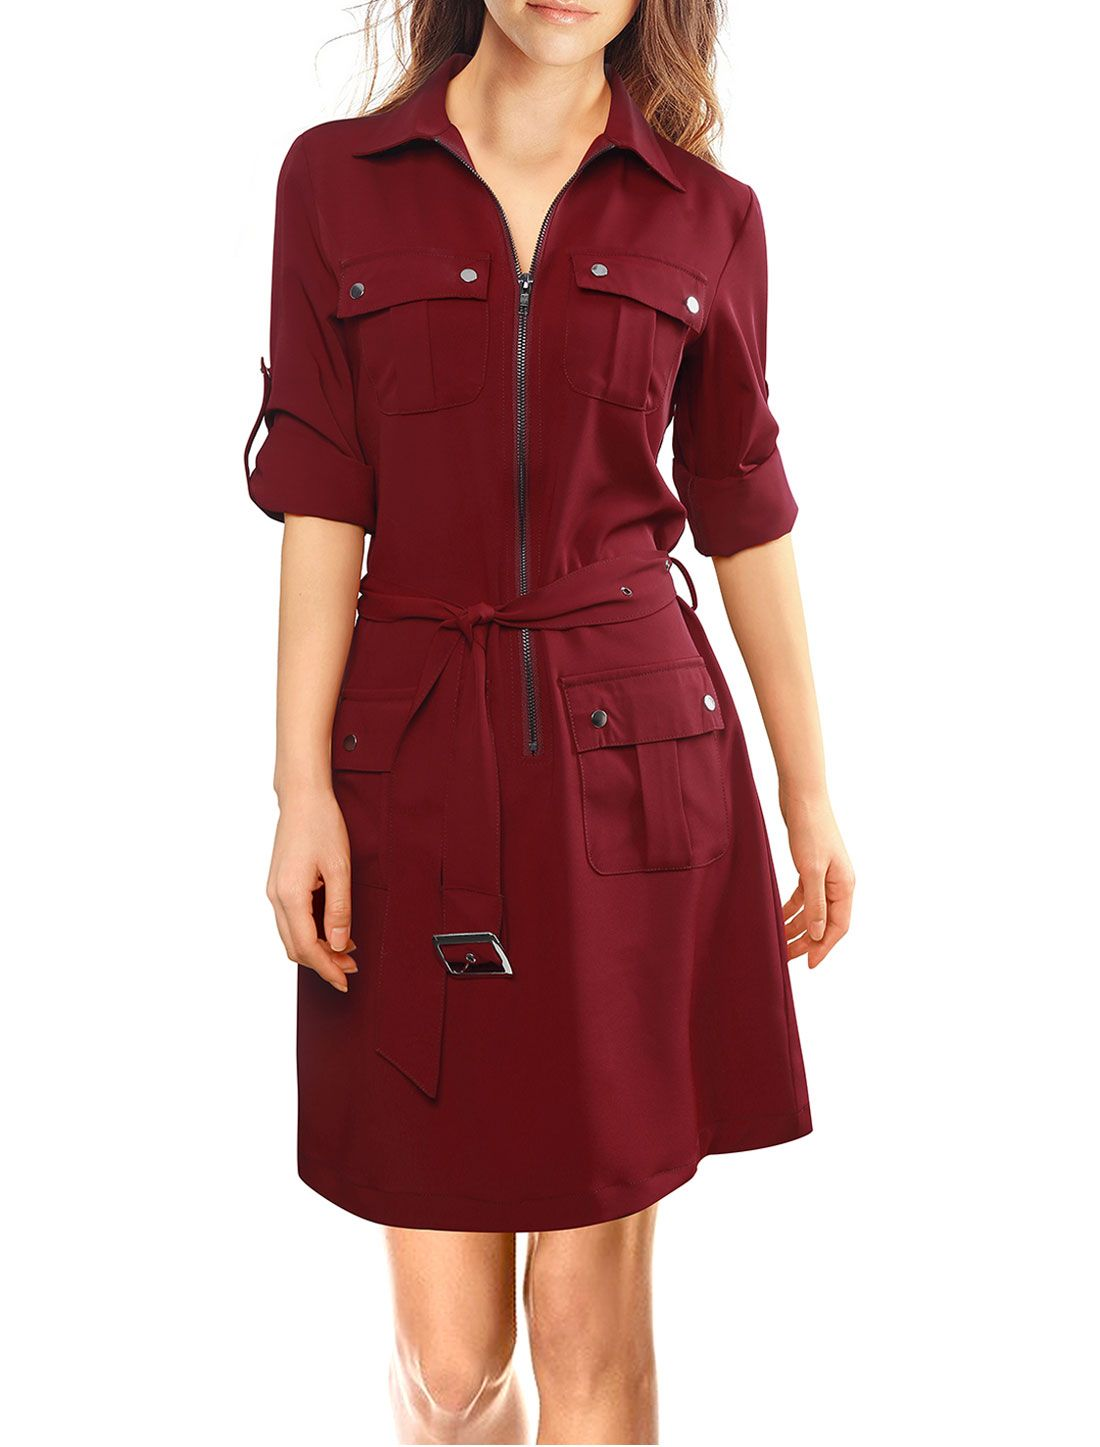 Womenus roll up sleeves multipocket belted shirt dress clothes